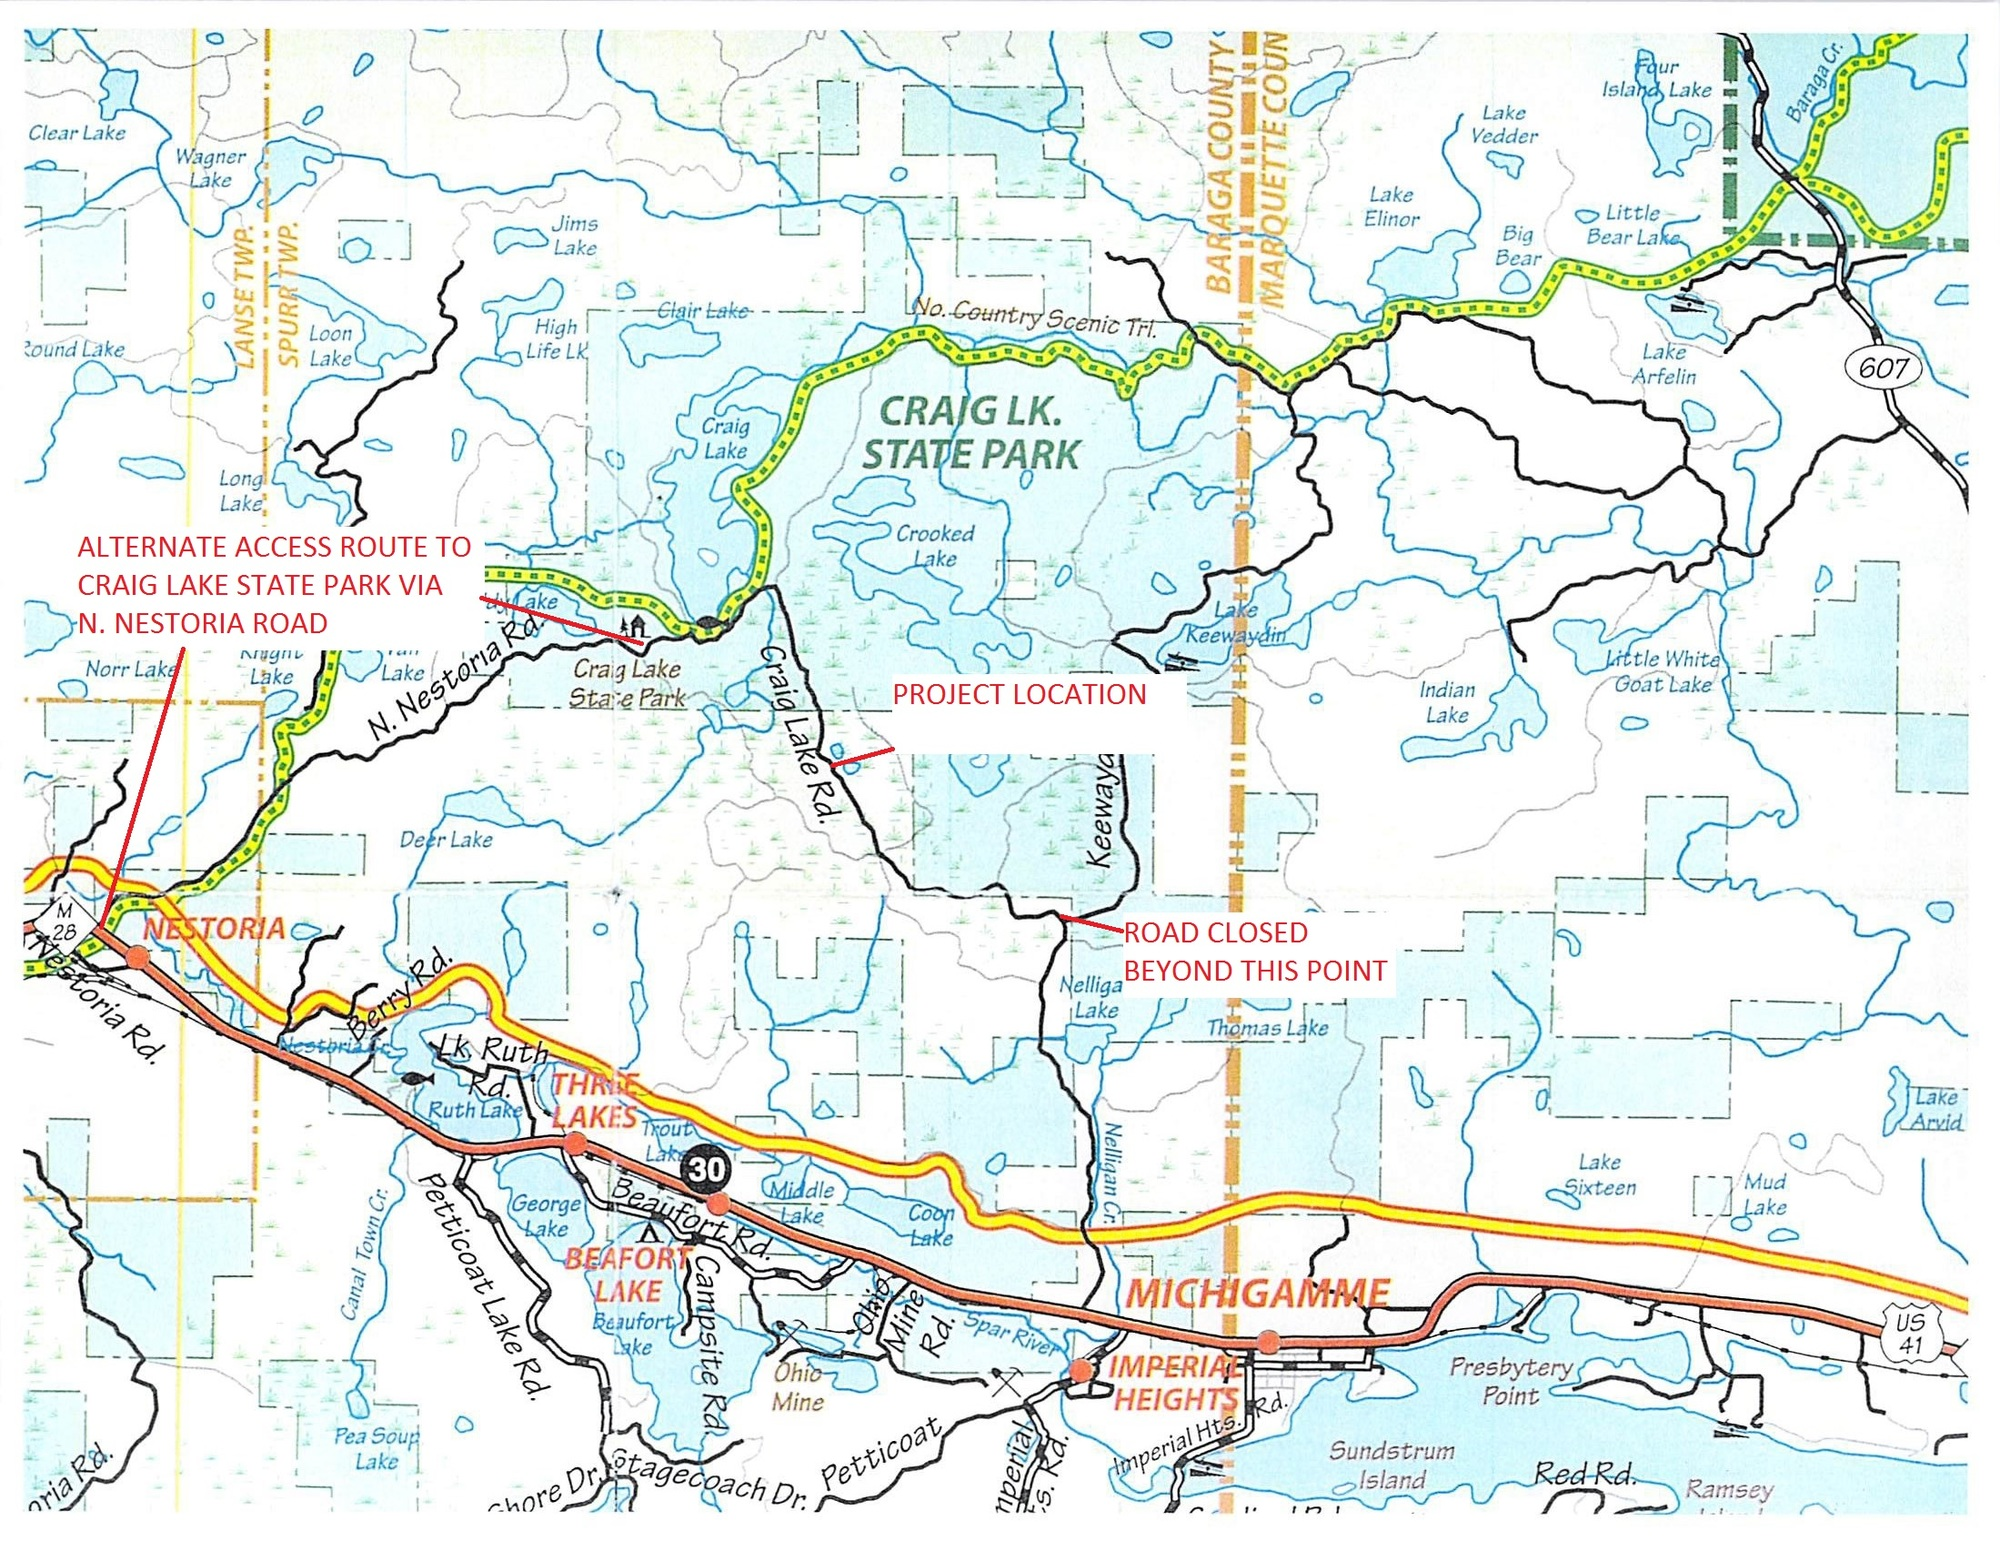 A detour map shows the Nelligan Road closure and reroute at Craig Lake State Park.